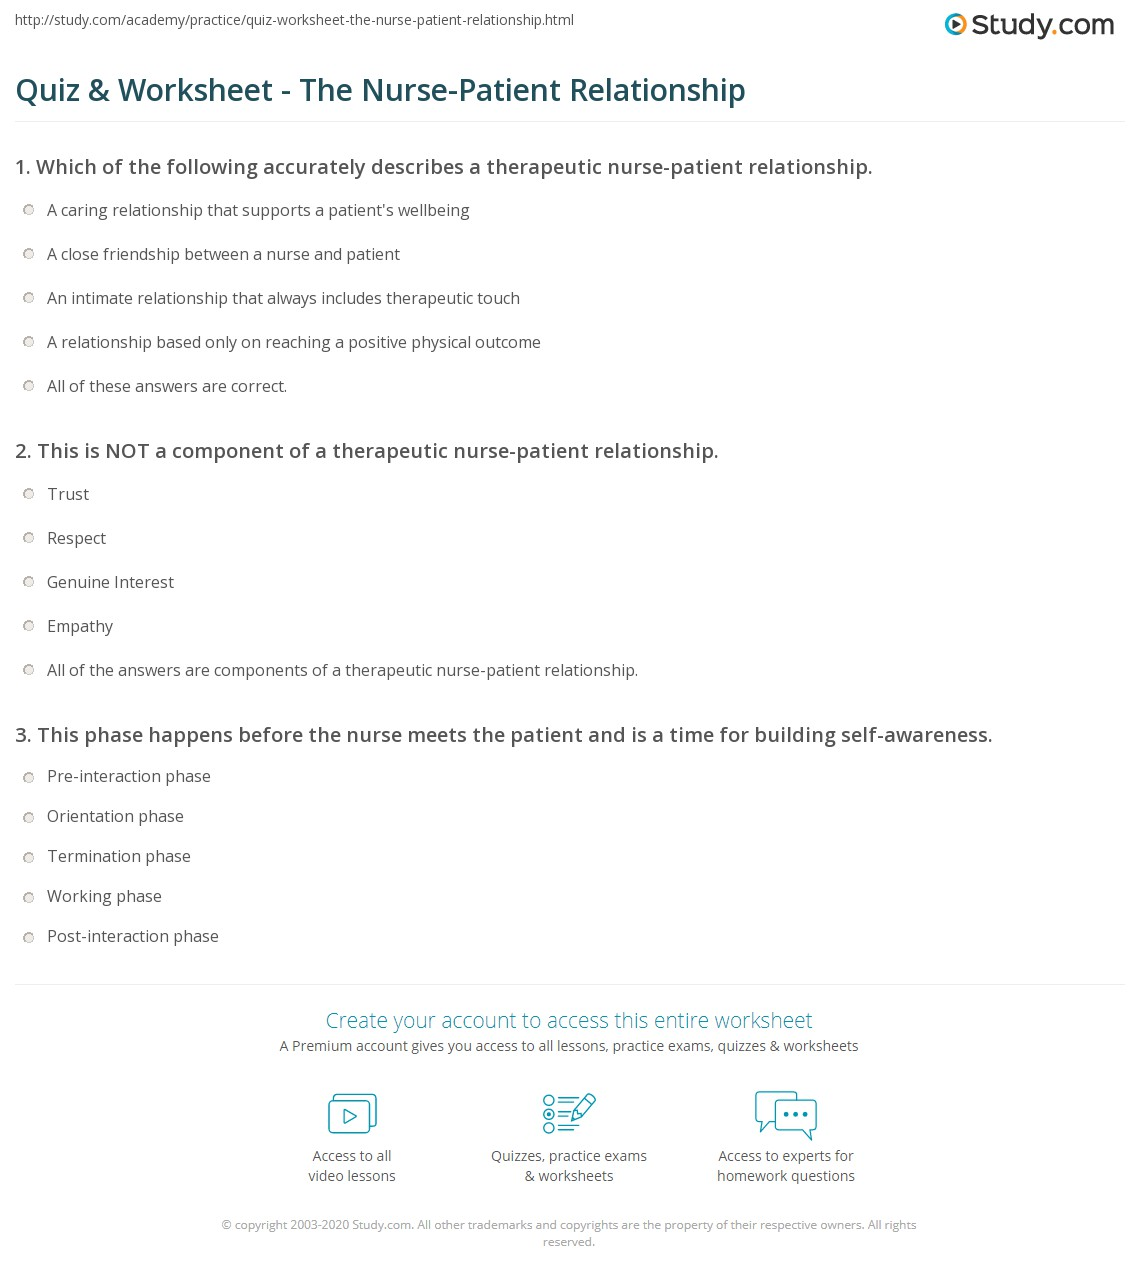 Print The Nurse-Patient Relationship: Components, Phases & Outcomes  Worksheet